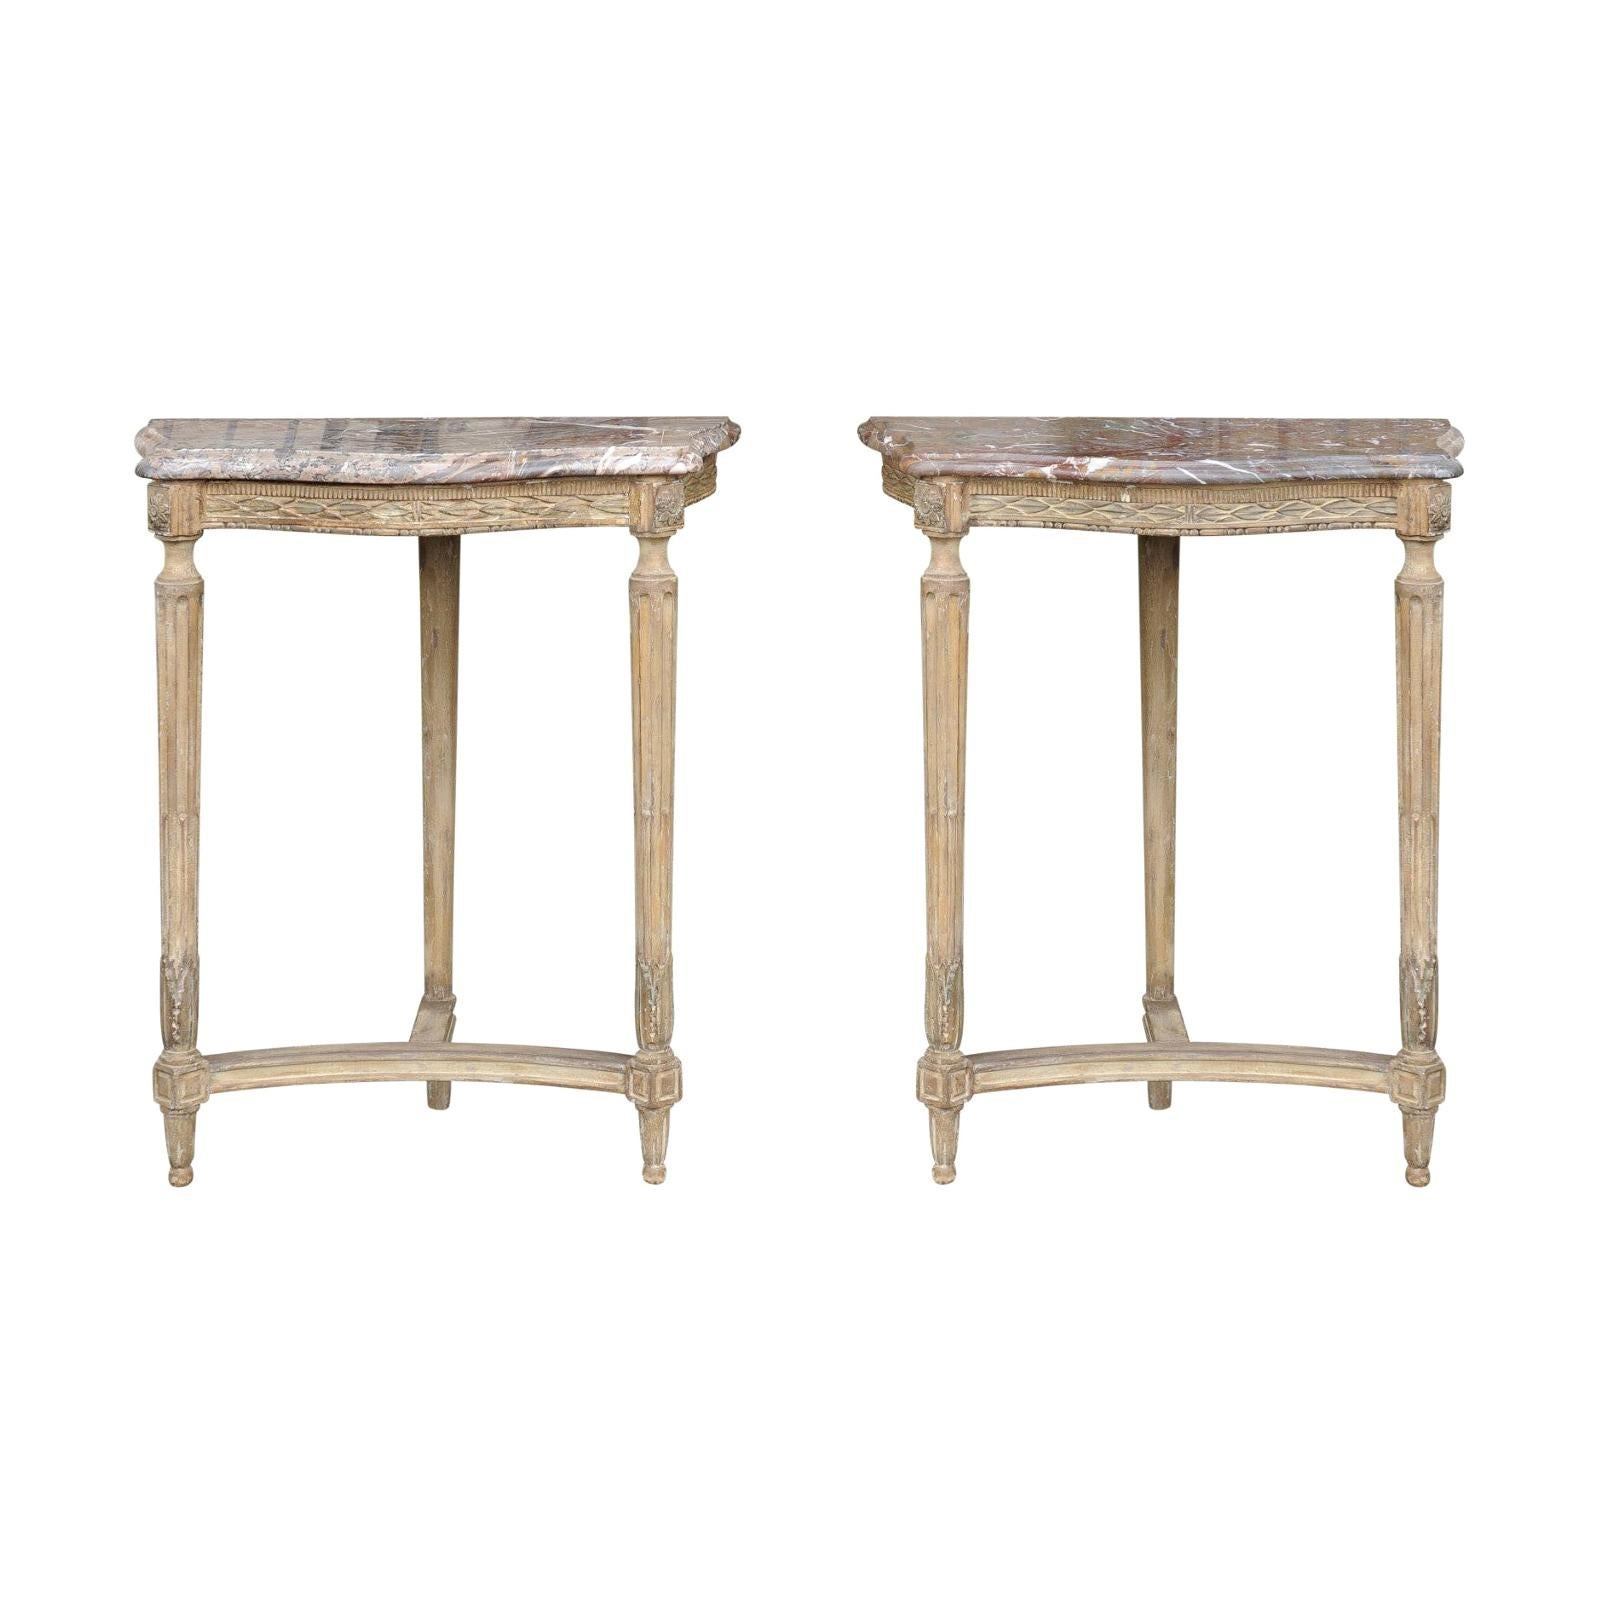 Pair of French Matching Neoclassical Painted Console Tables with Marble Tops